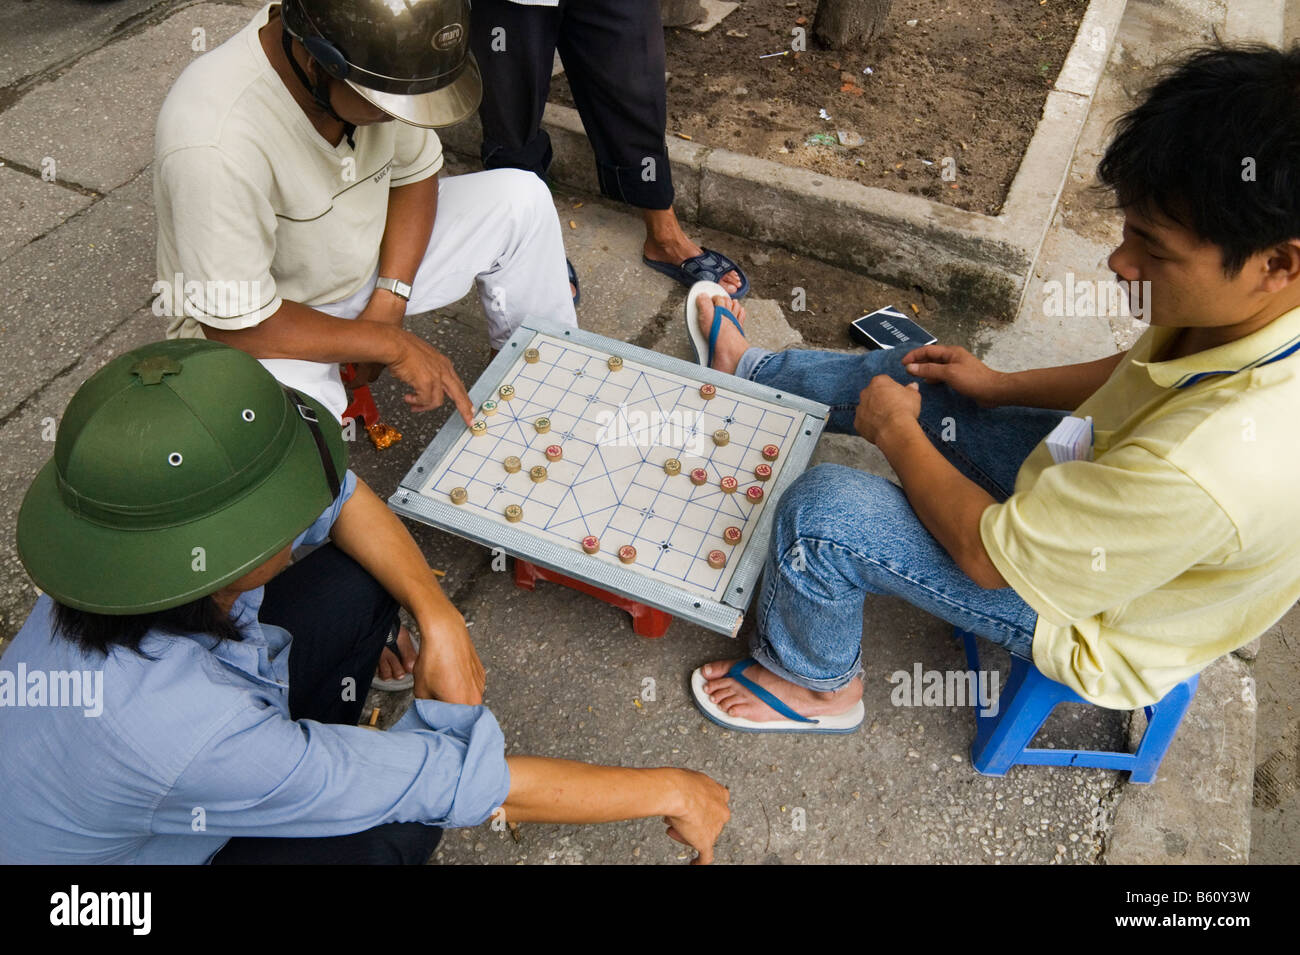 Men playing Vietnamese Chess - Co' tu'o'ng in the streets of Ho Chi Minh City, Vietnam - Stock Image